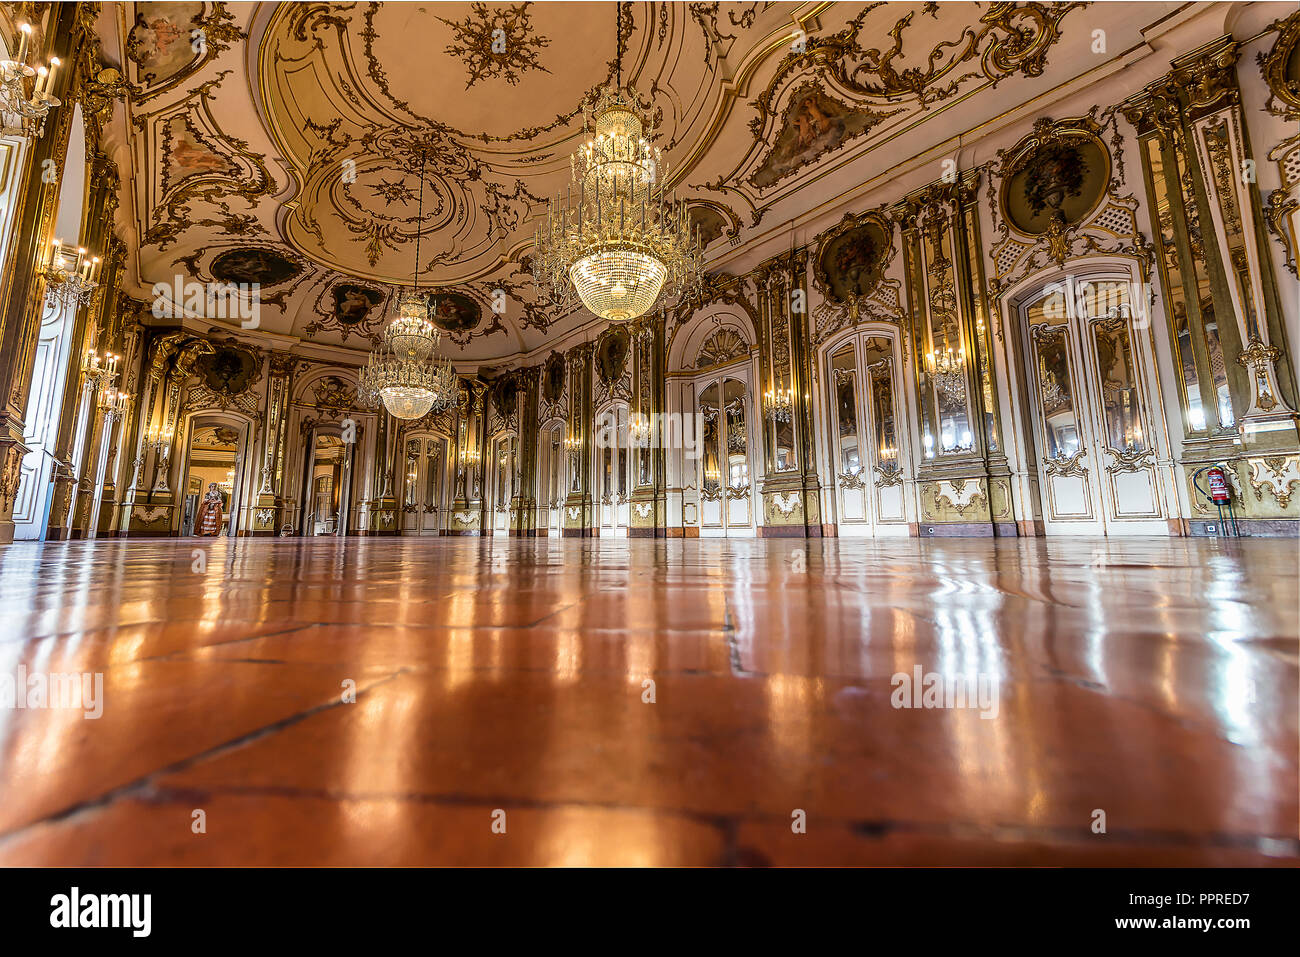 Queluz, Portugal - December 9, 2017: The Ballroom, rich decorated of Queluz Royal Palace. Formerly used as the Summer residence by the Portuguese roya Stock Photo